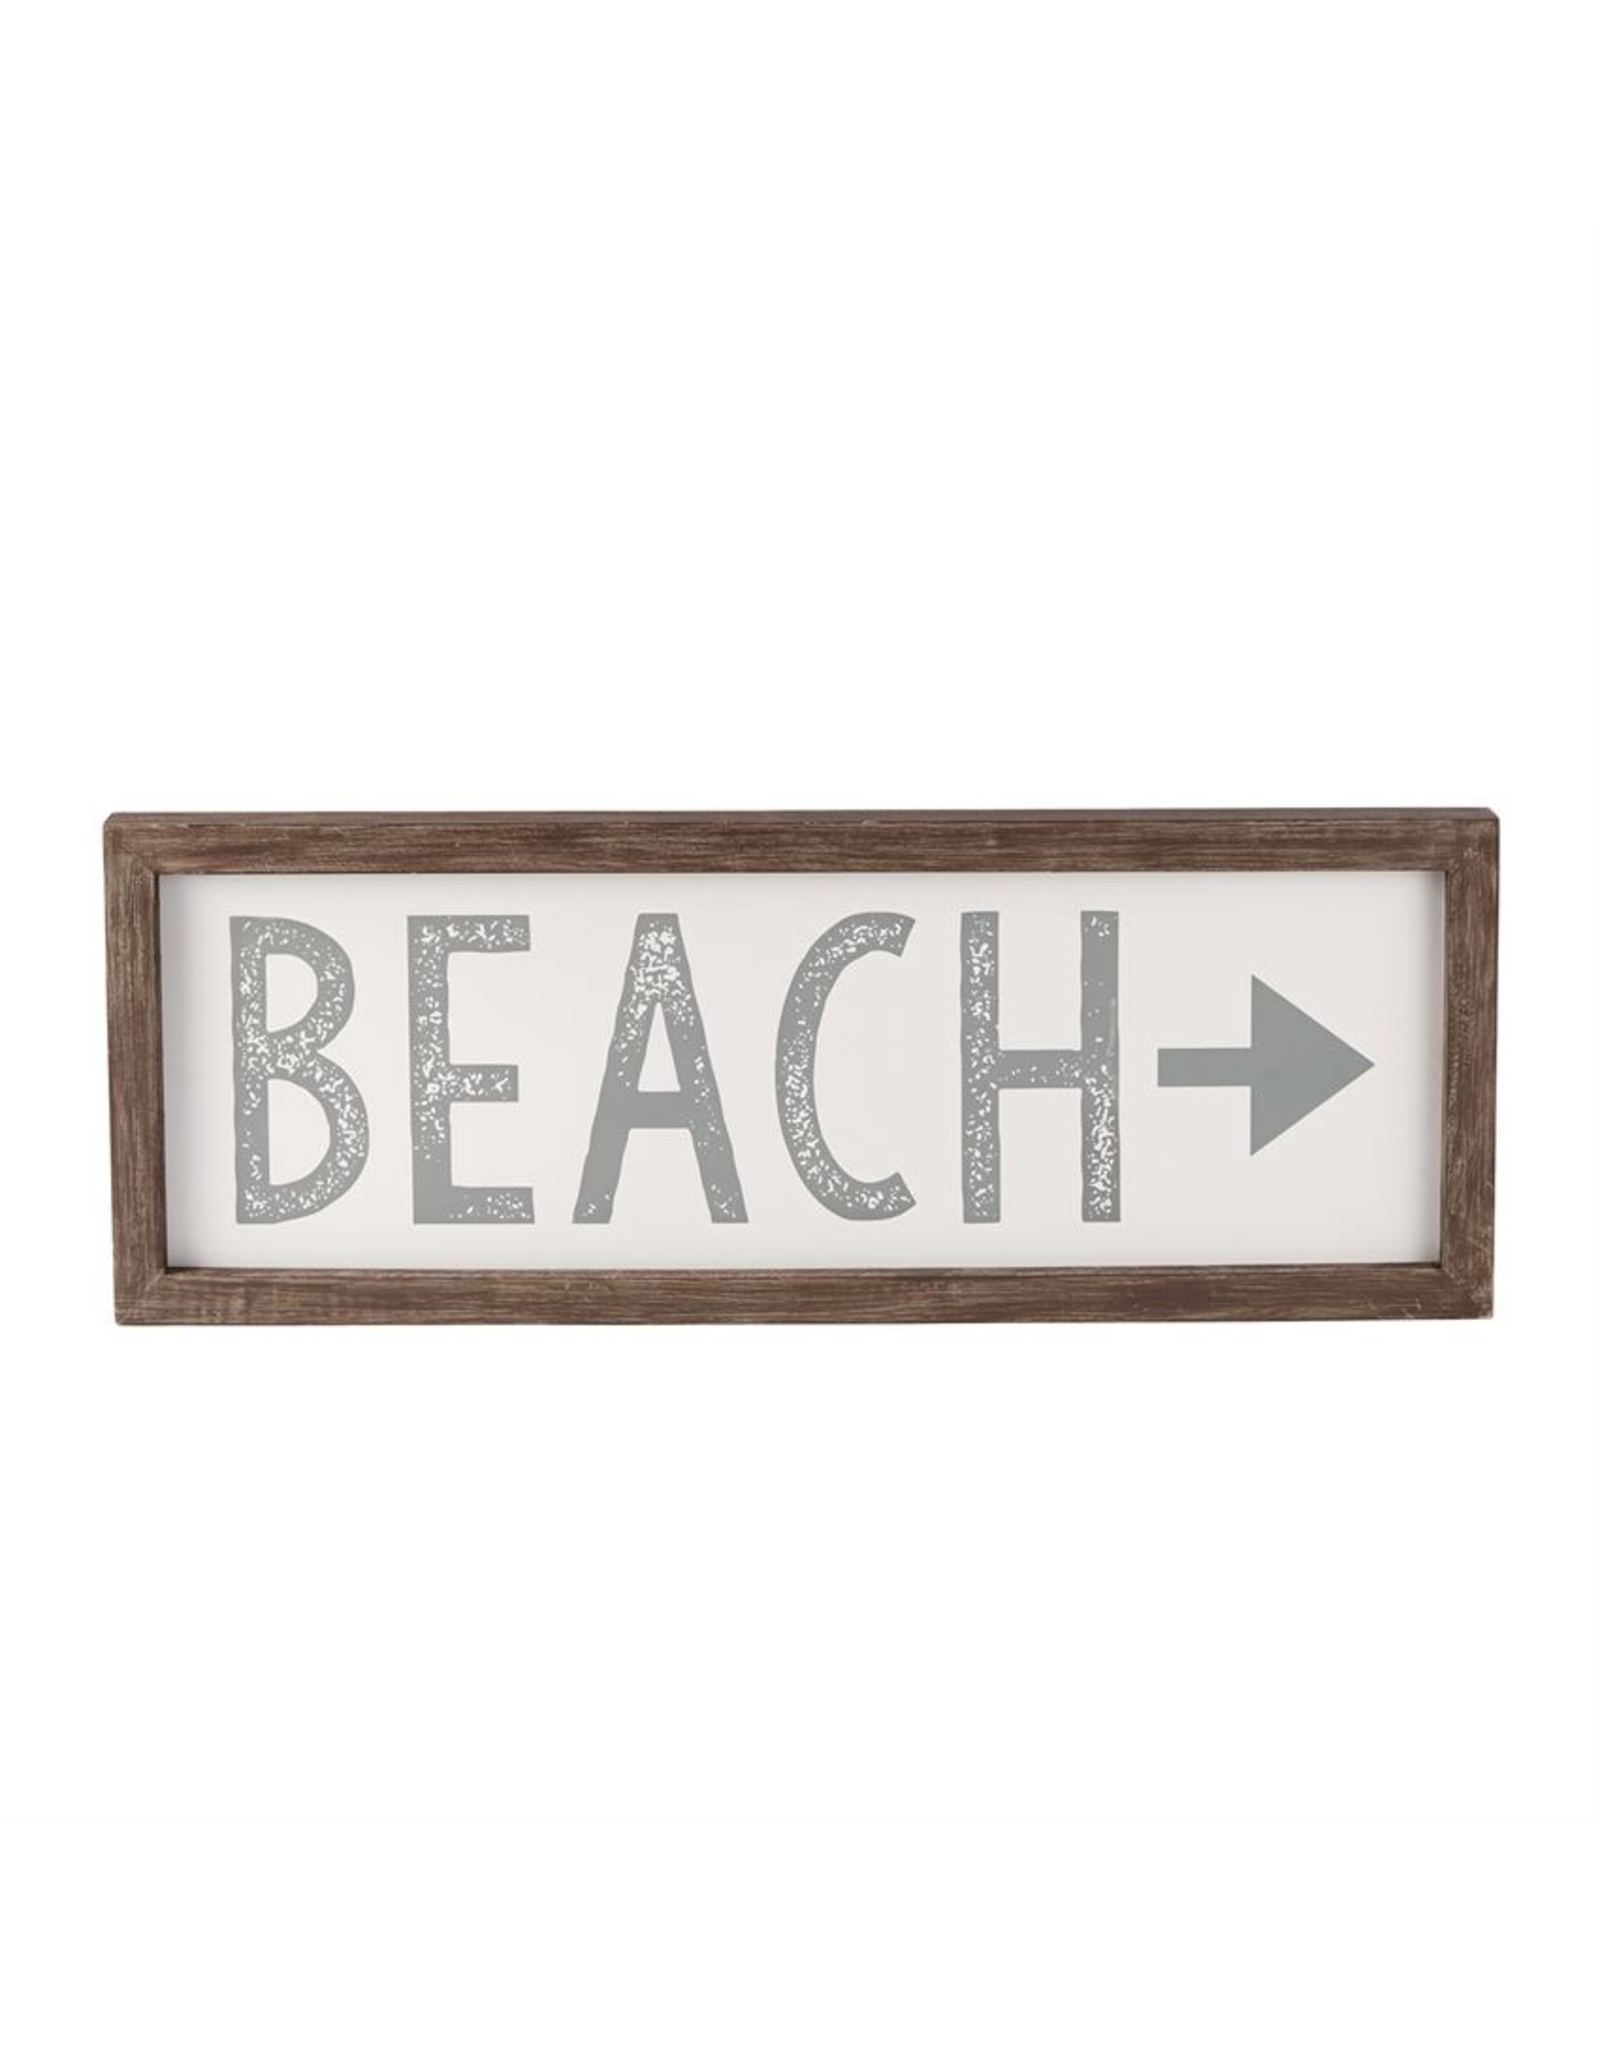 Mud Pie Beach Arrow Plaque w Raised Wooden Boarder 9.5x16